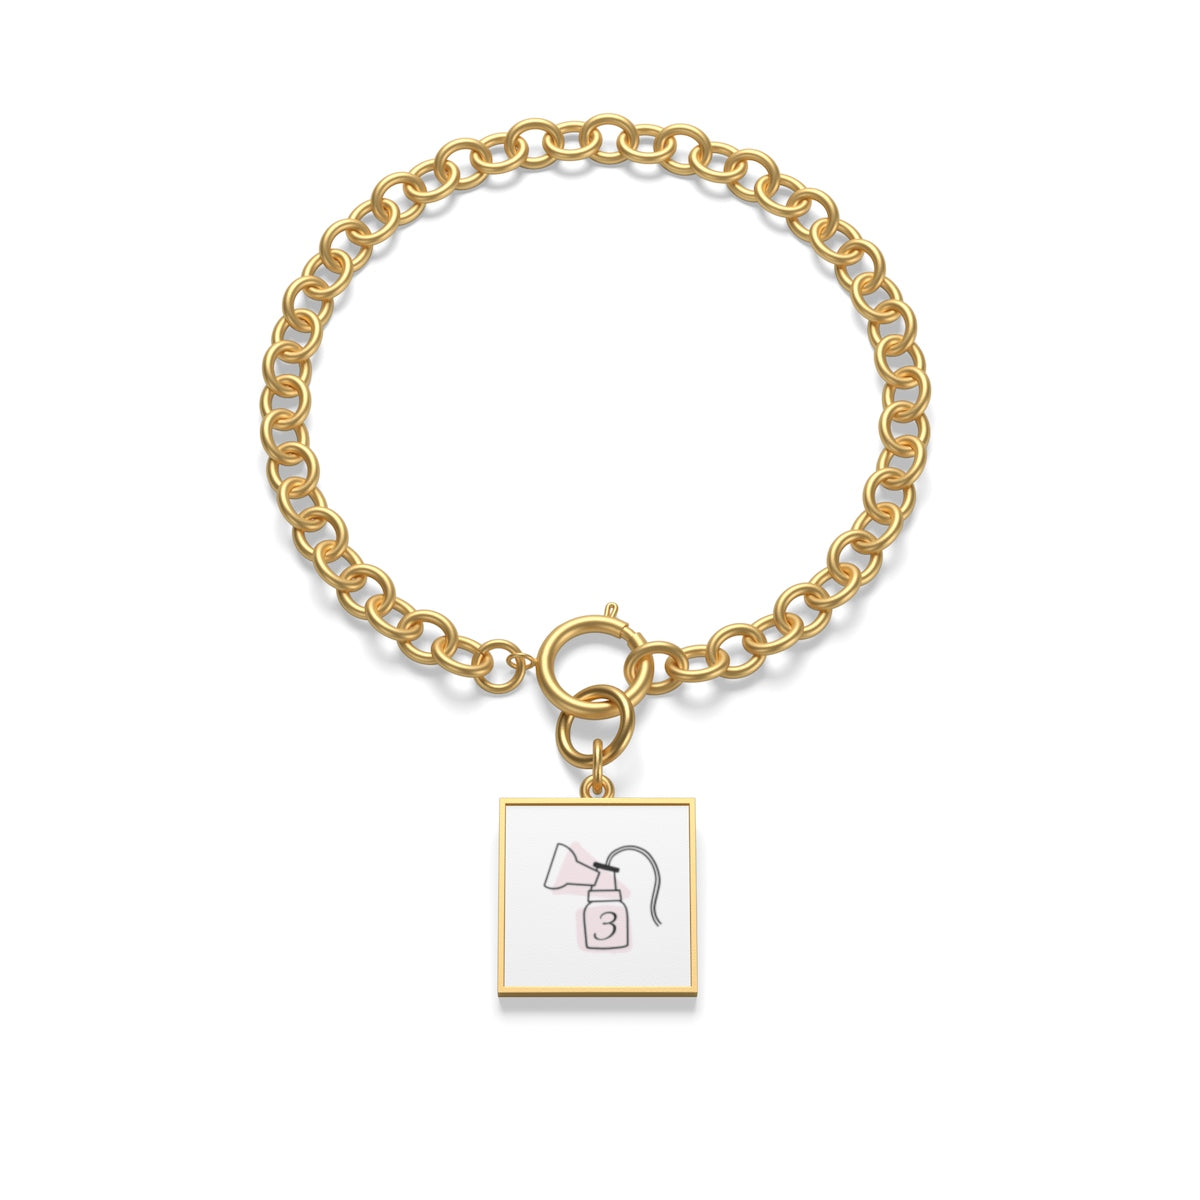 3 Months Exclusive Pumping Mom's Jewelry - Chunky Chain Bracelet